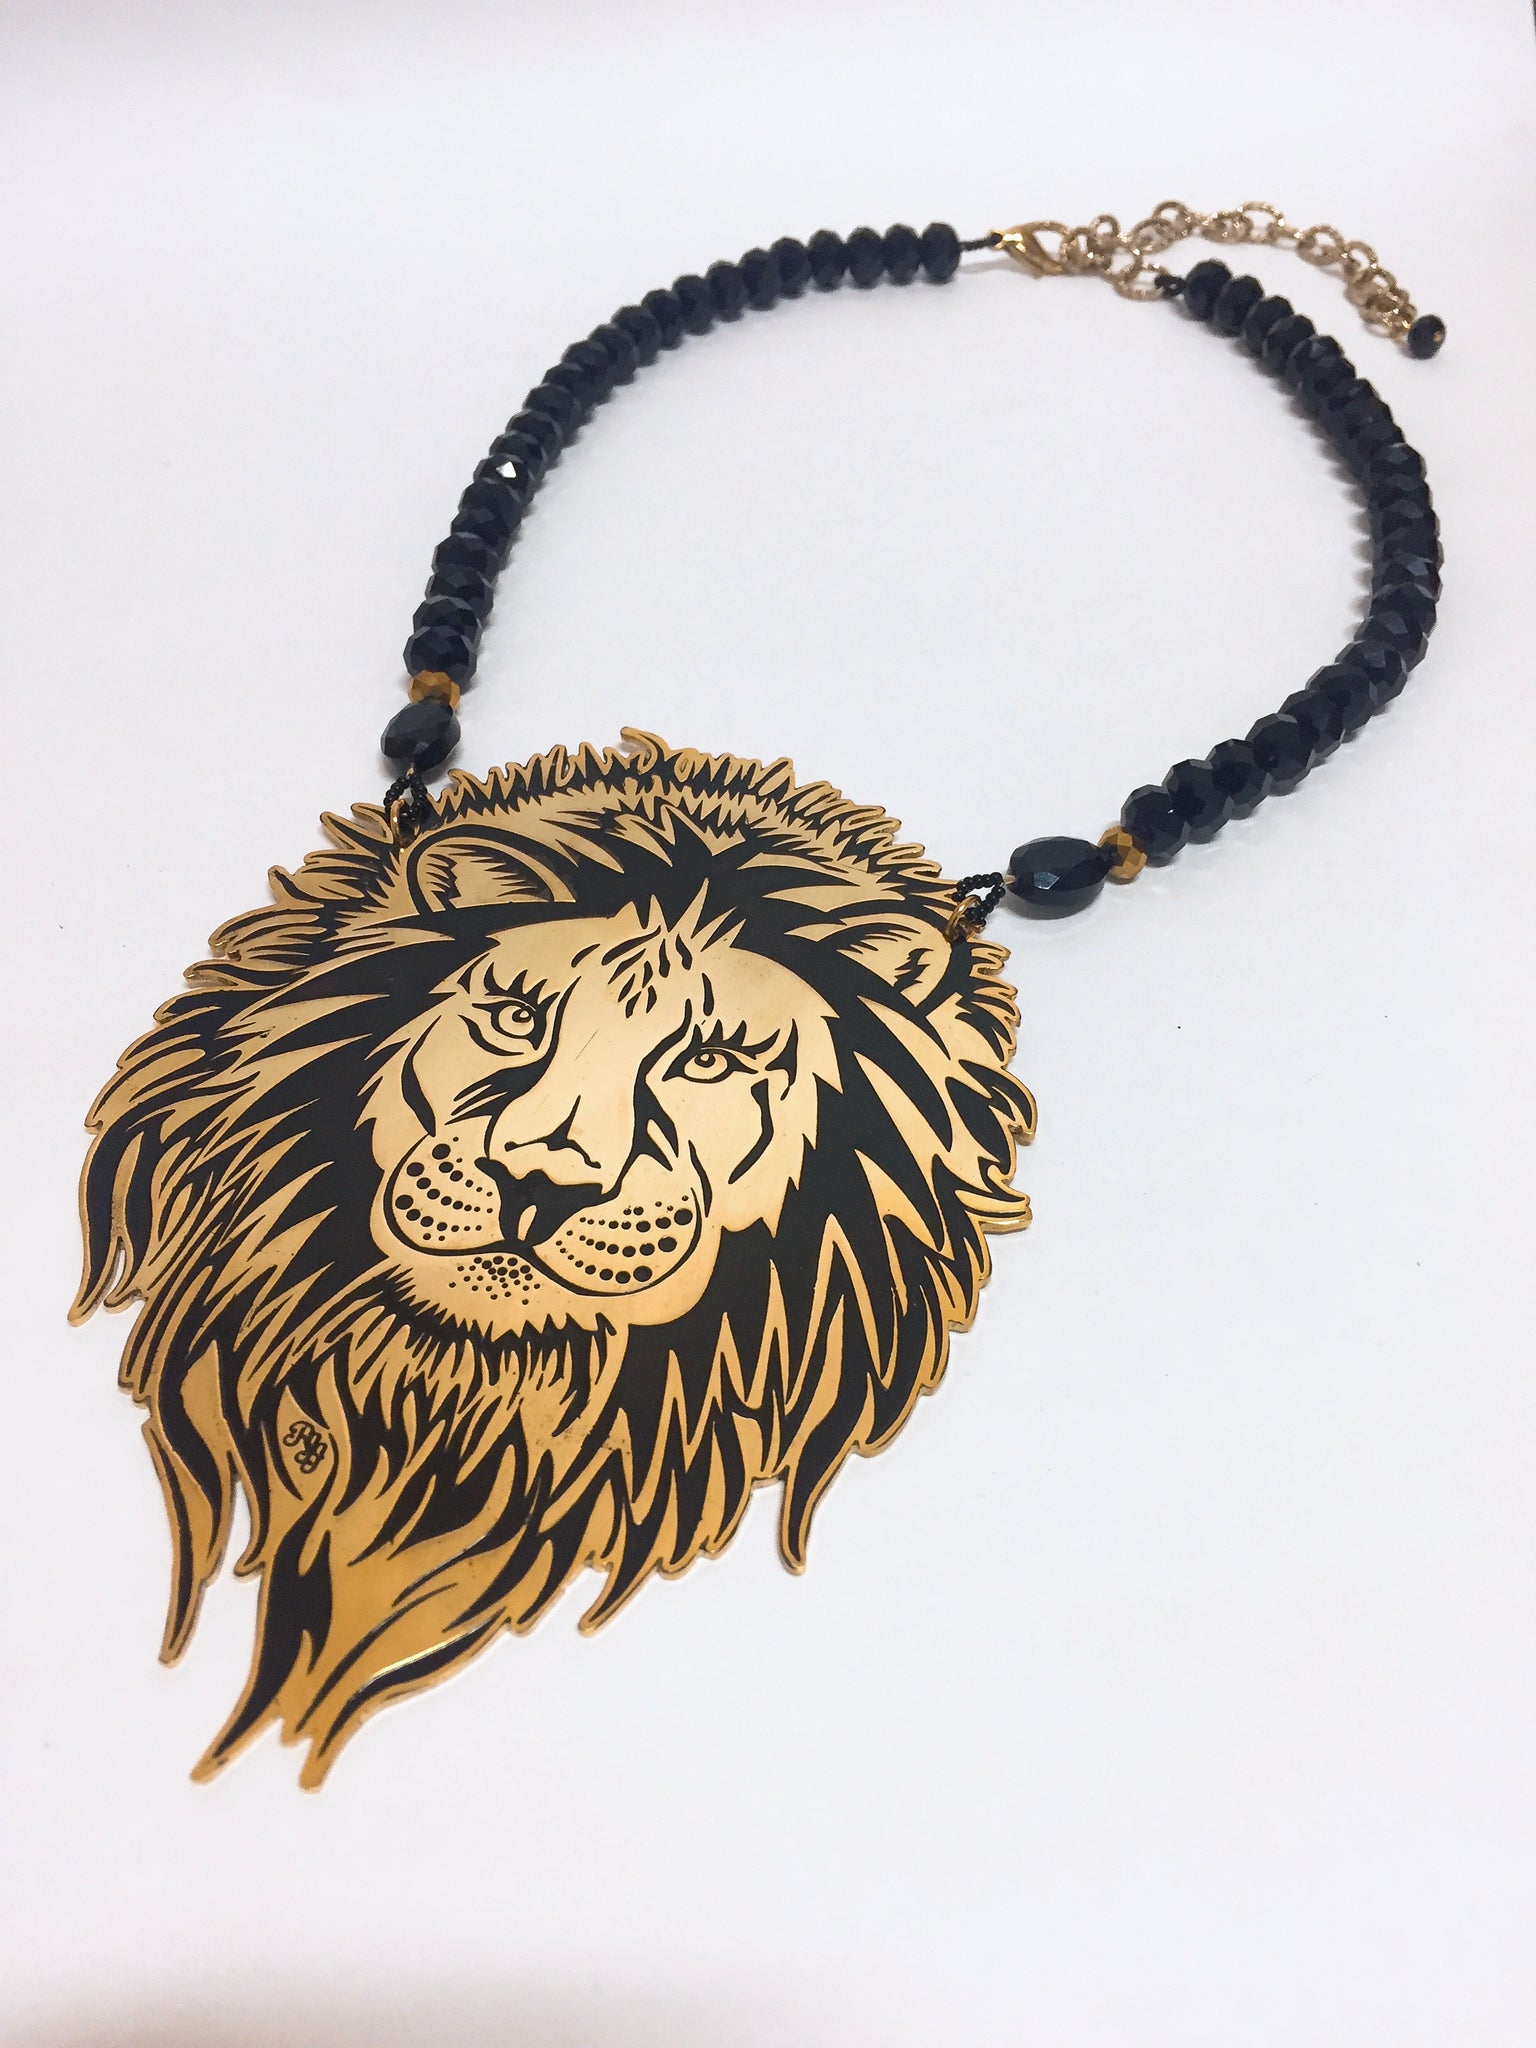 Animal Power Fierce Lion Necklace - Riddhika Jesrani